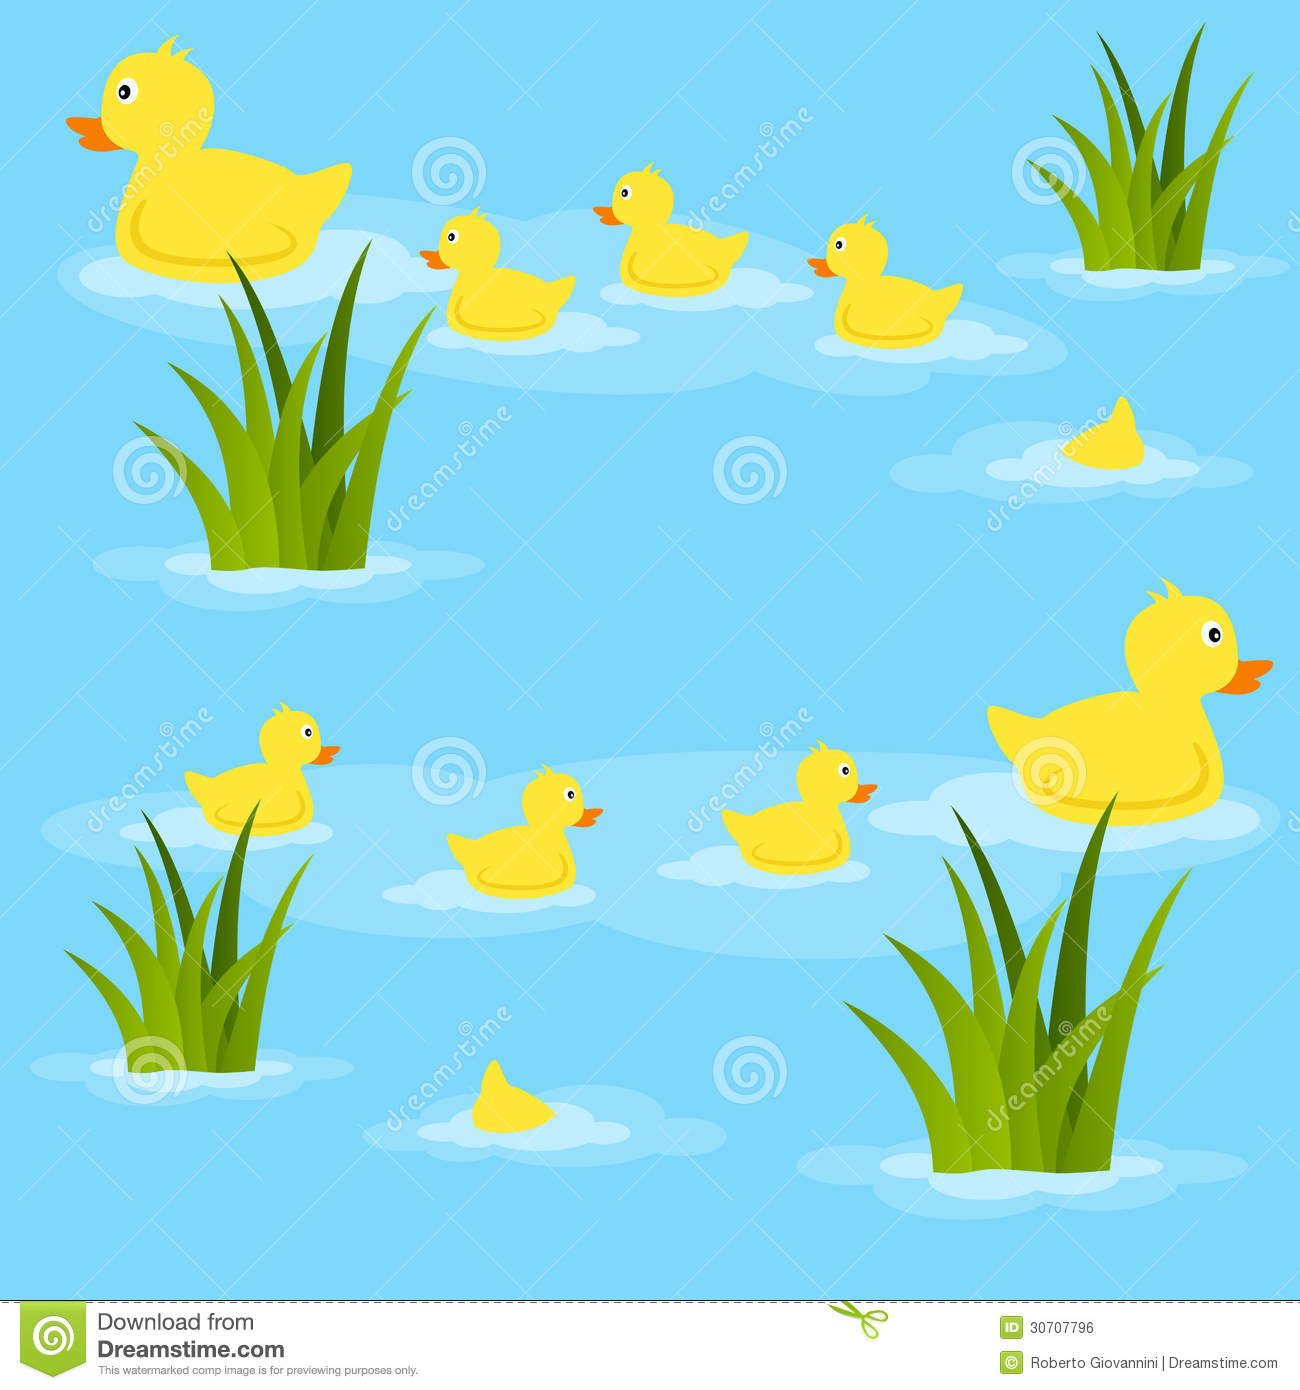 Seamless Pattern With Ducks And Ducklings Swimming In A Pond  Useful